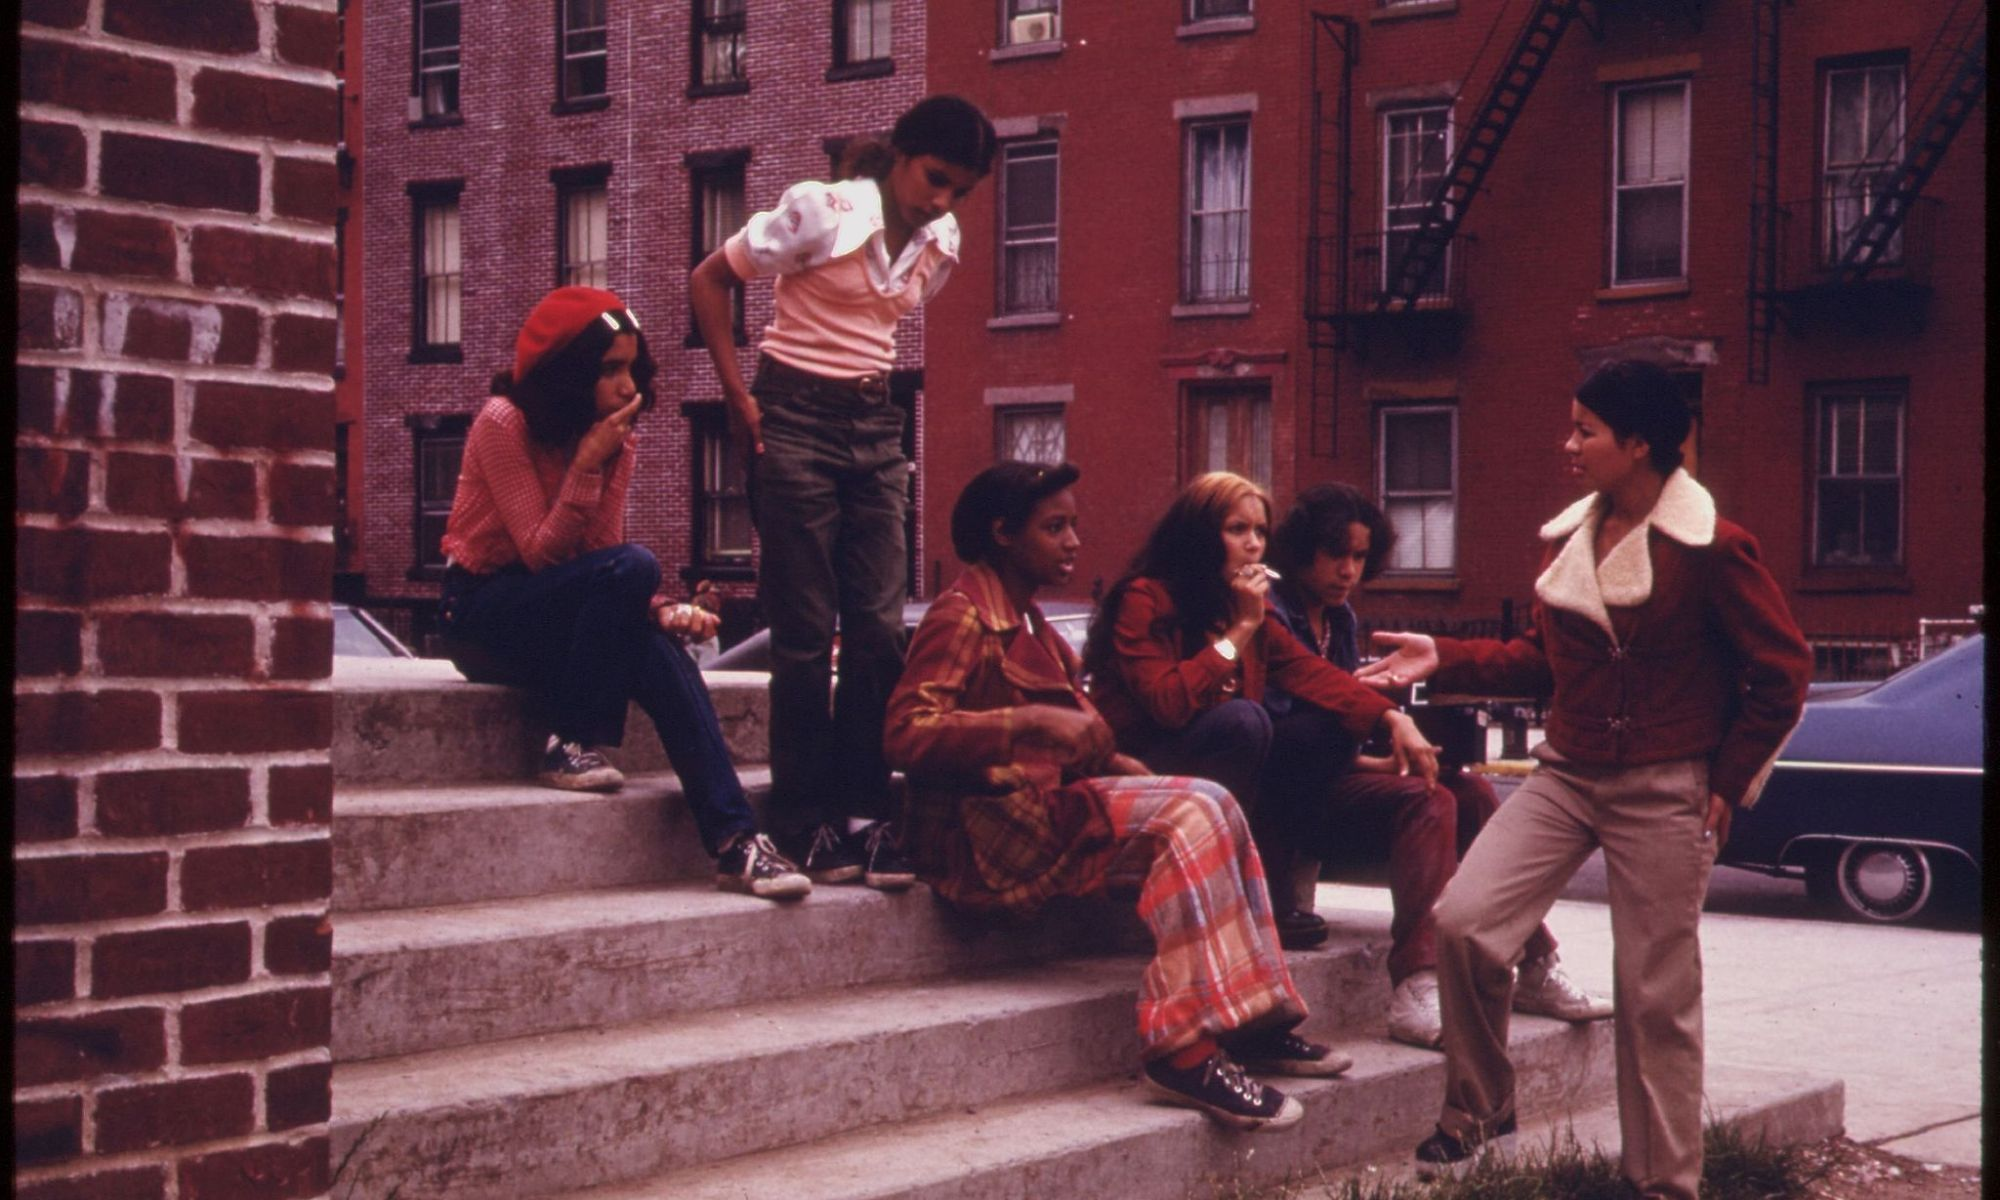 Latino teenagers in Lynch Park, Brooklyn, in the 1970s.